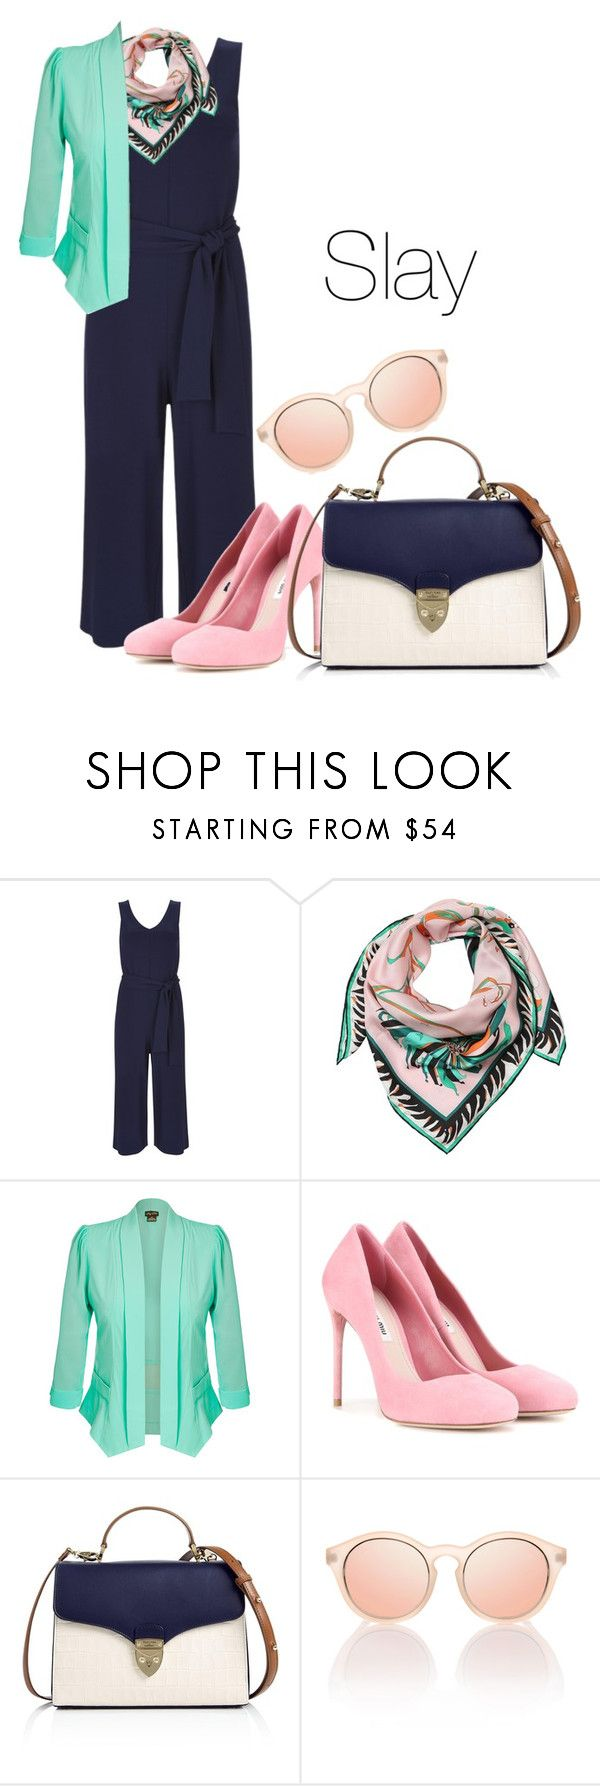 """""""Untitled #305"""" by racita on Polyvore featuring Emilio Pucci, City Chic, Miu Miu, Aspinal of London and Le Specs"""